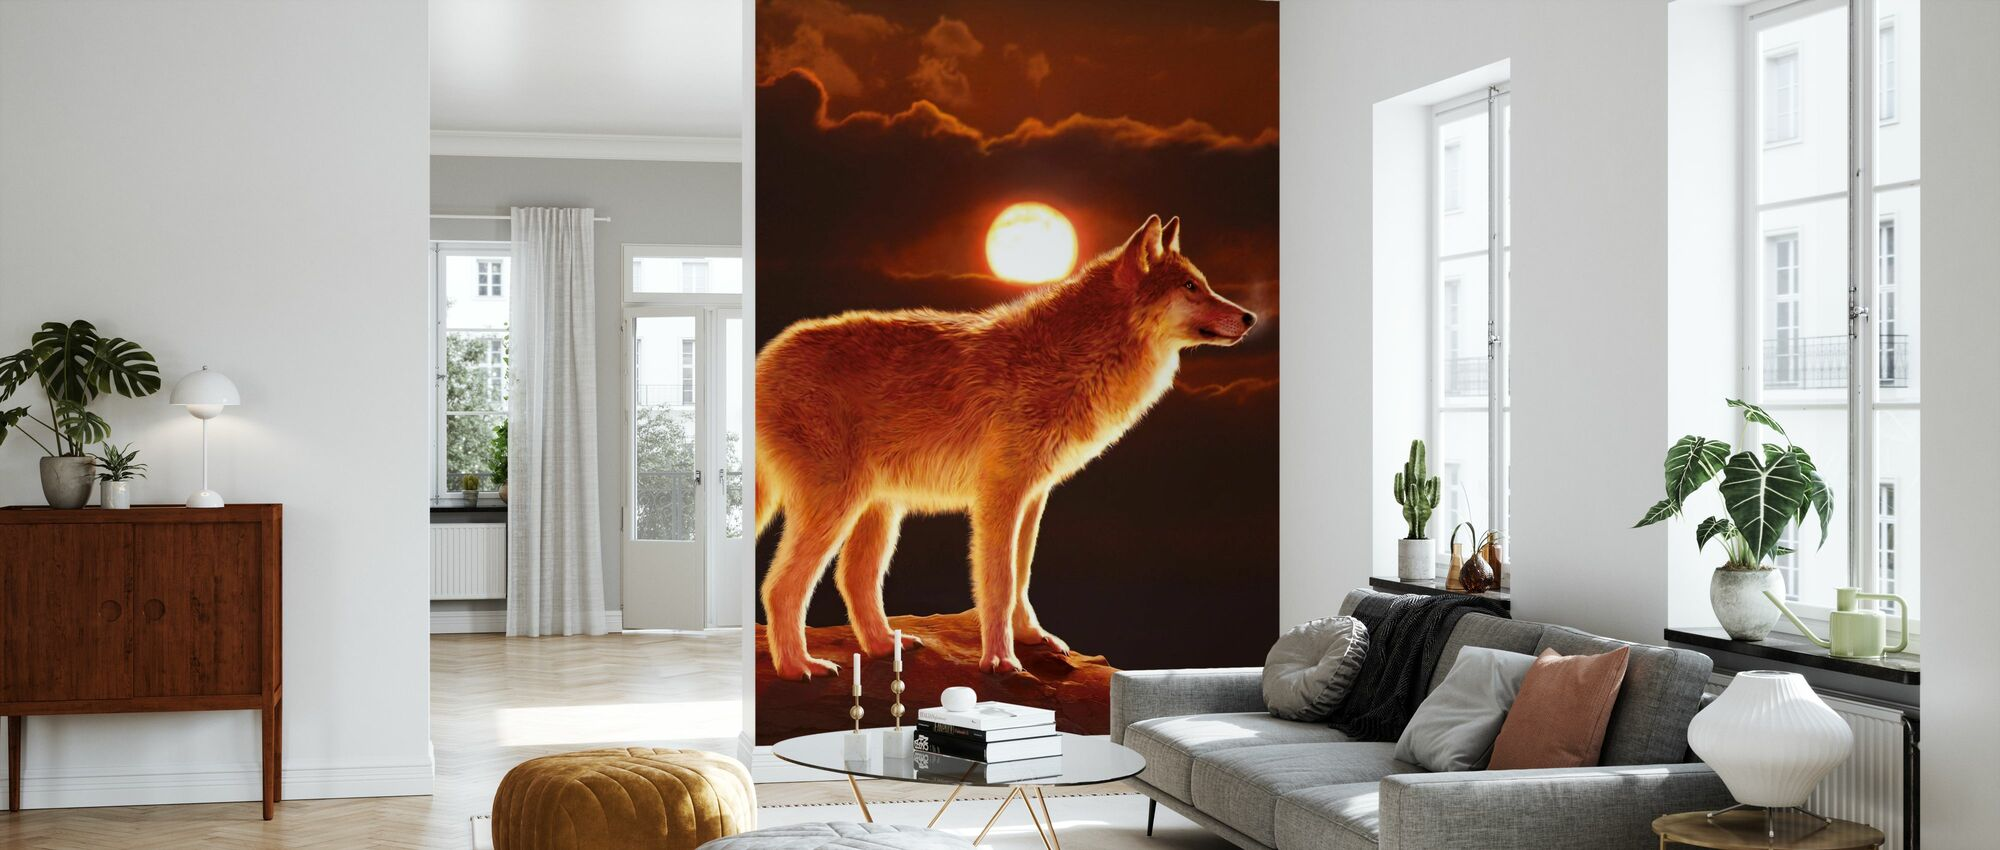 Sunset Wolf - Wallpaper - Living Room